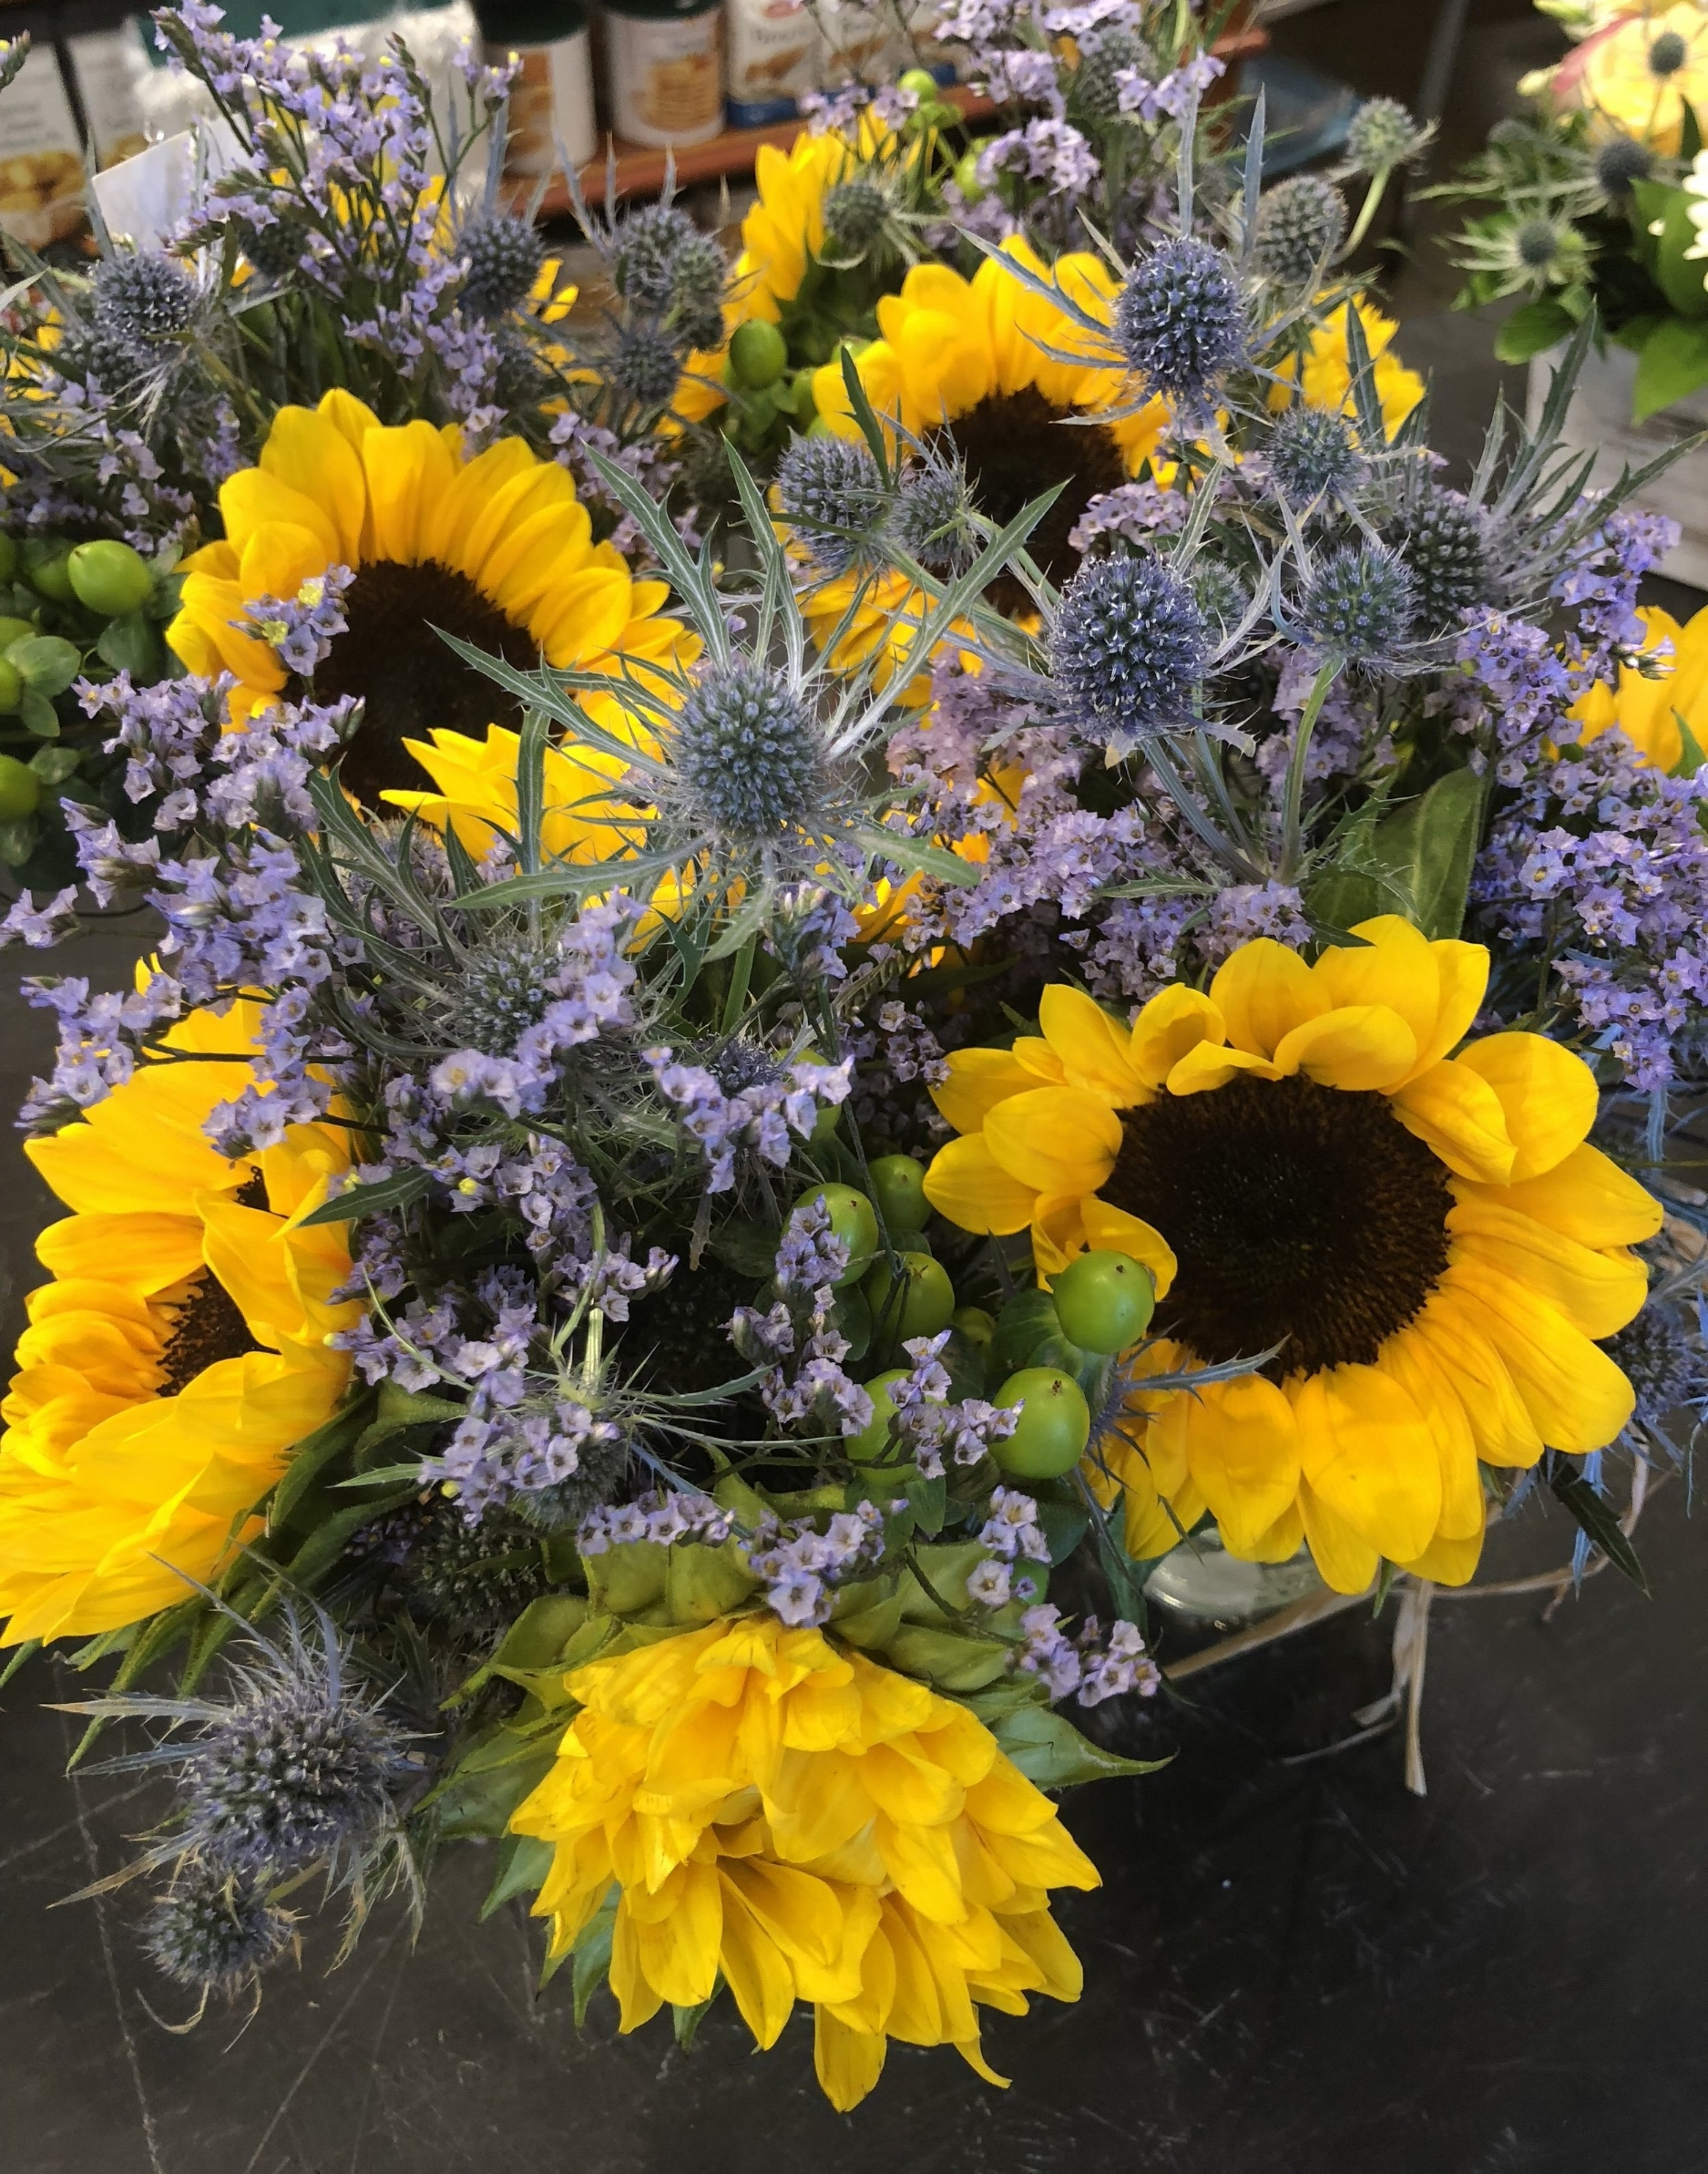 Russo's hand made floral arrangements of Sunflowers, Eryngium, Limonium and Green Hypericum berries